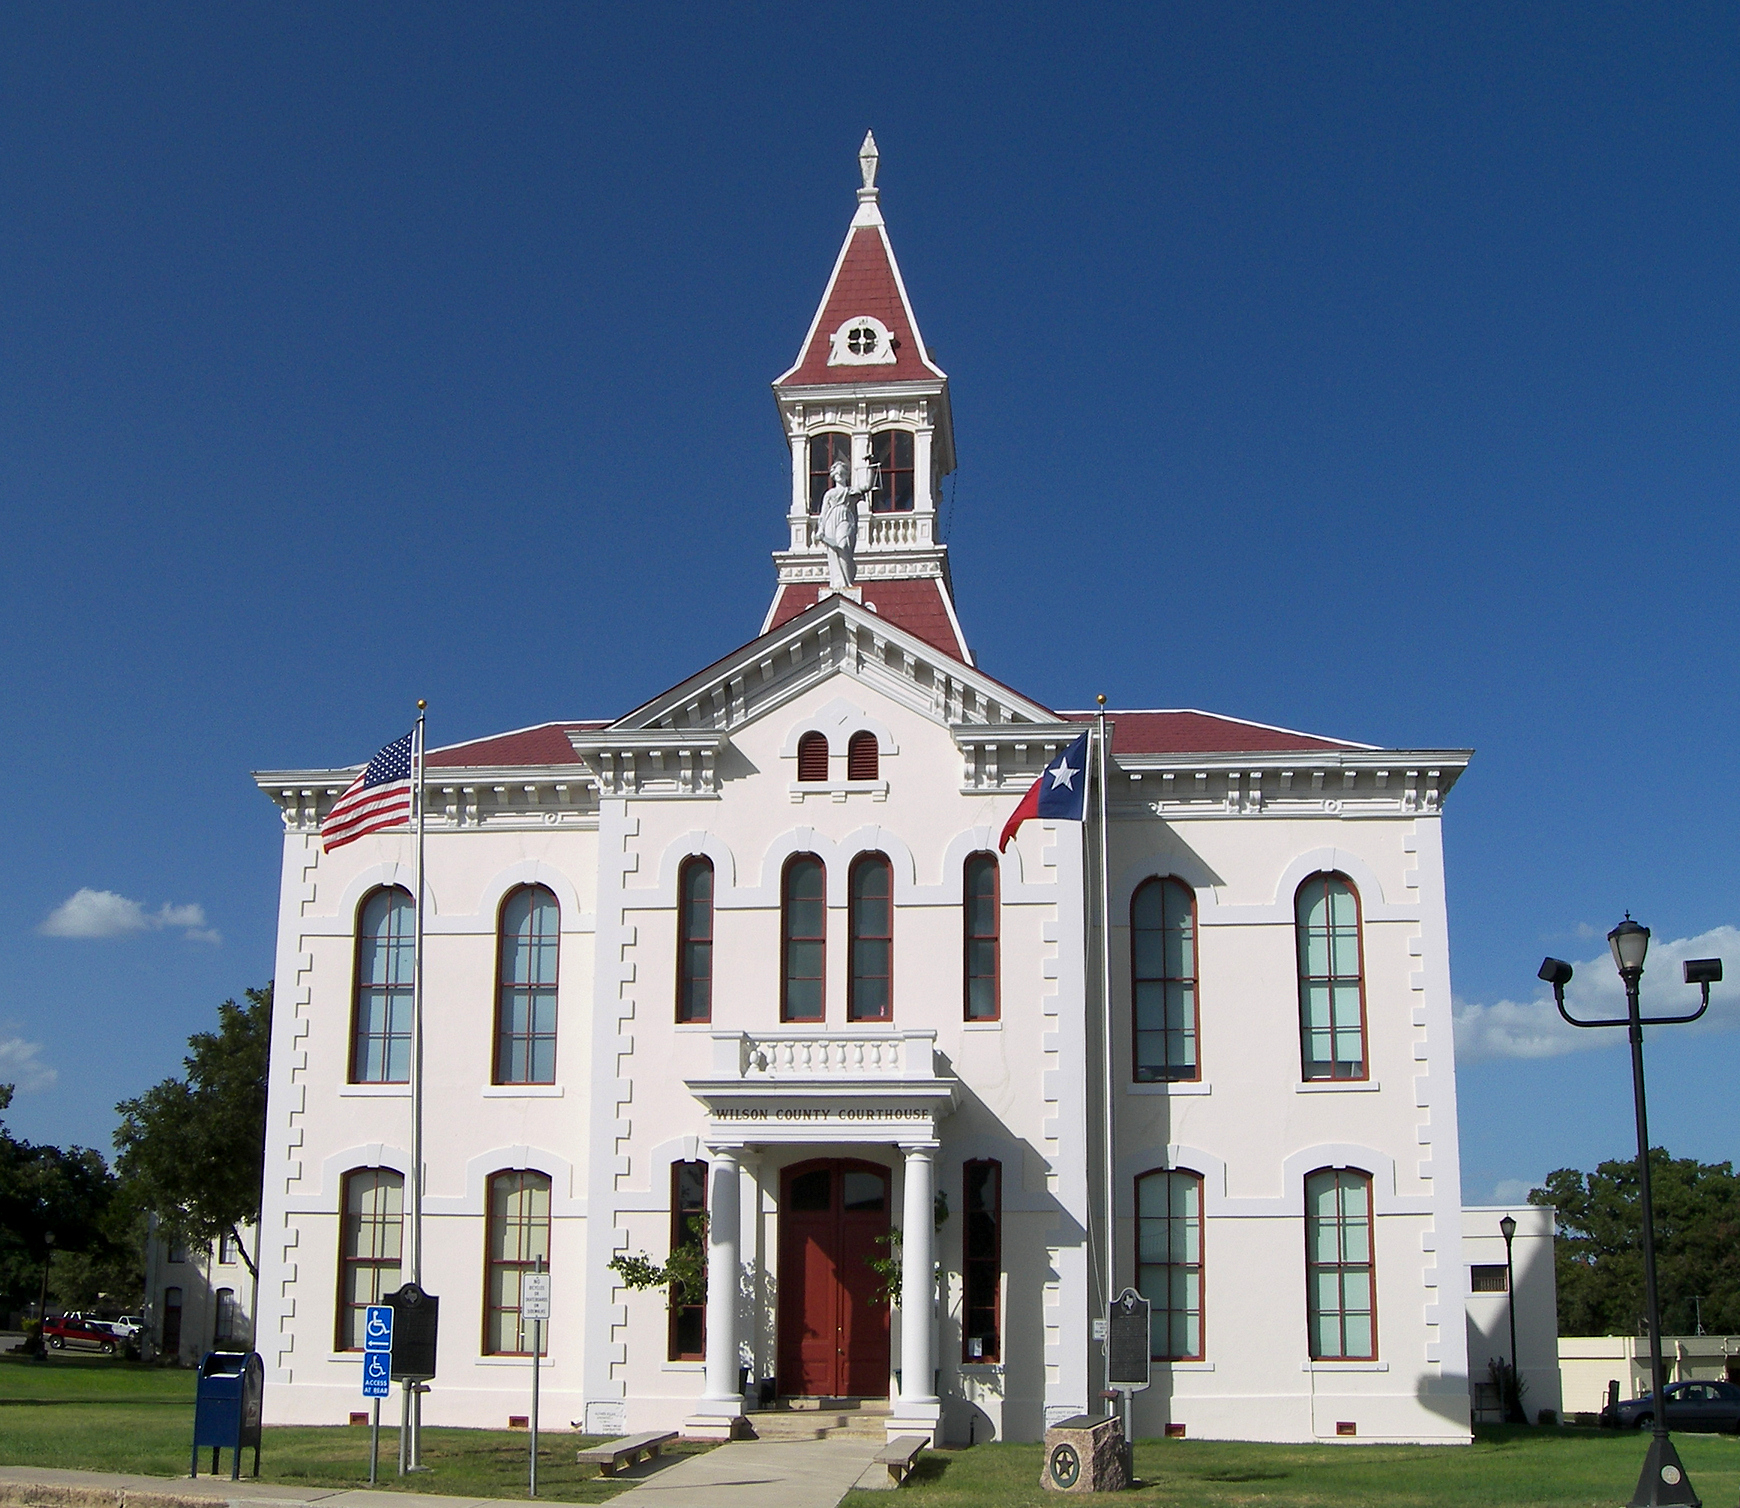 Wilson County Courthouse and Jail (Floresville, Texas)